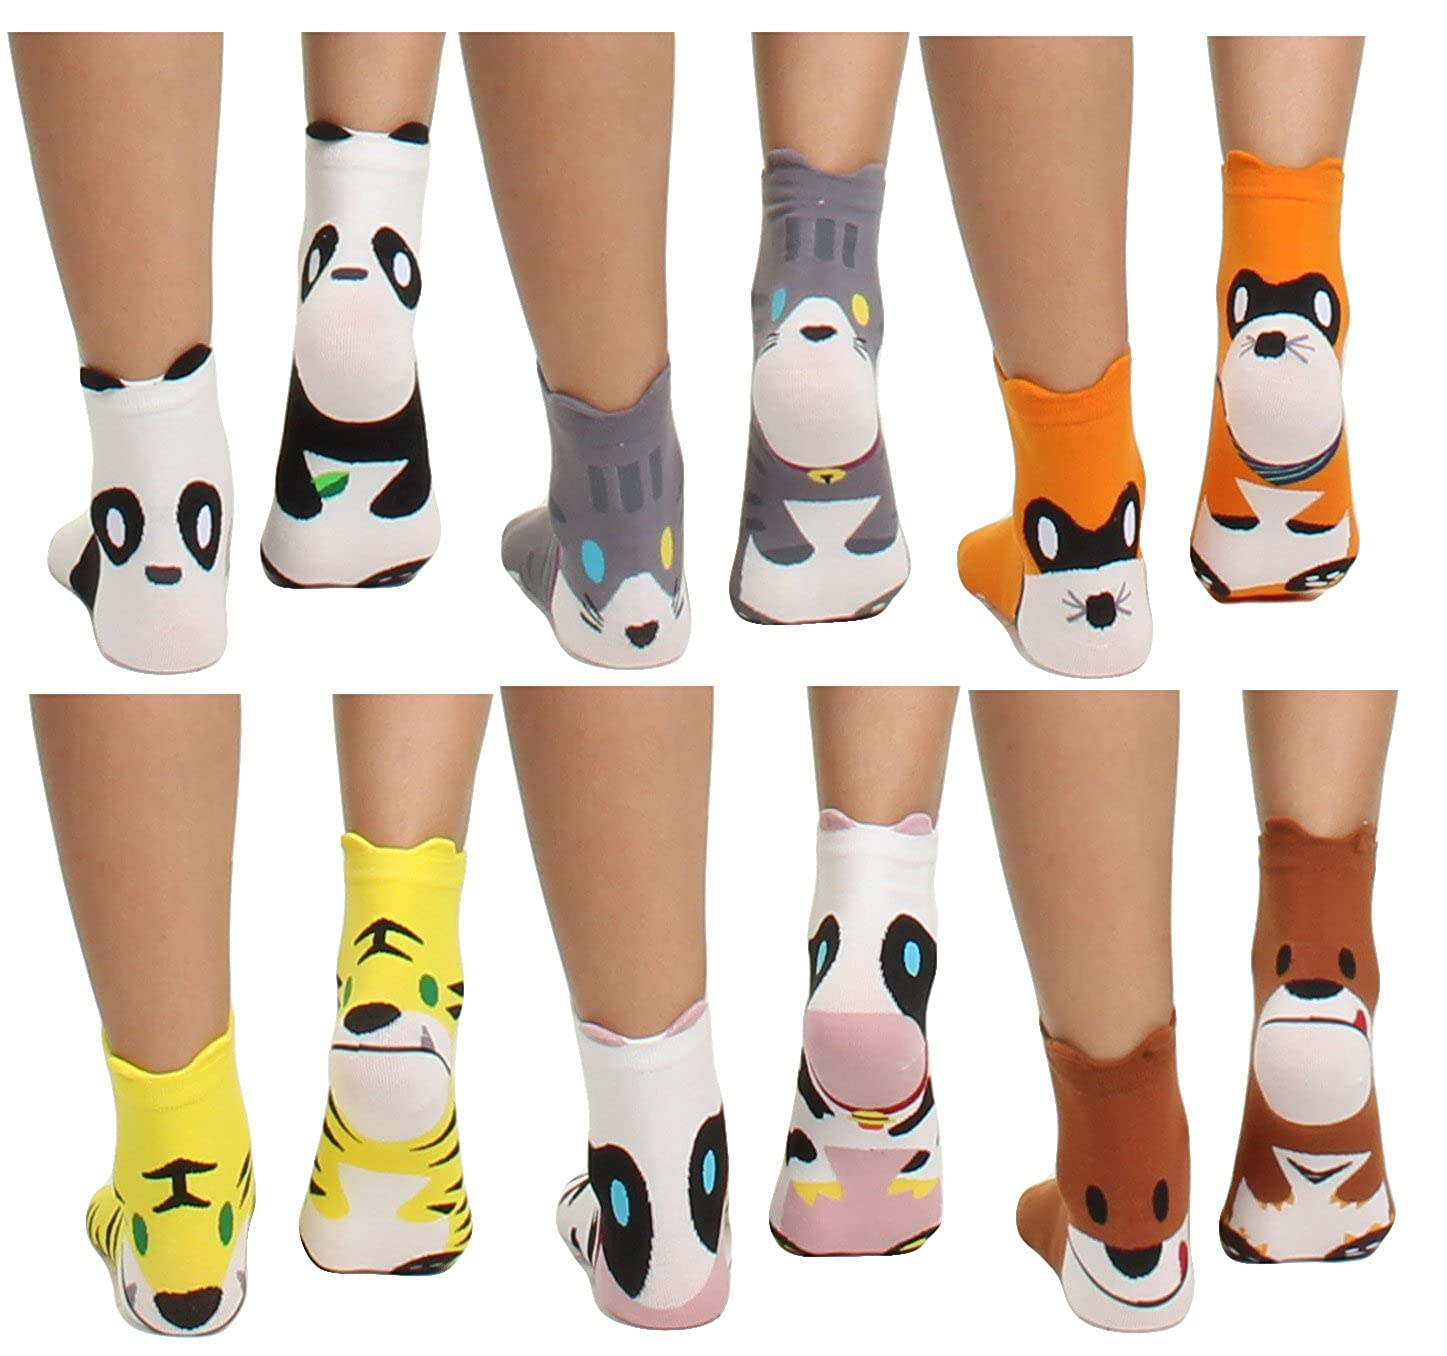 Cow GILBIN'S Womens Girls Cute Casual Comfortable Cotton Animal Print Novelty Socks (6 Pack)